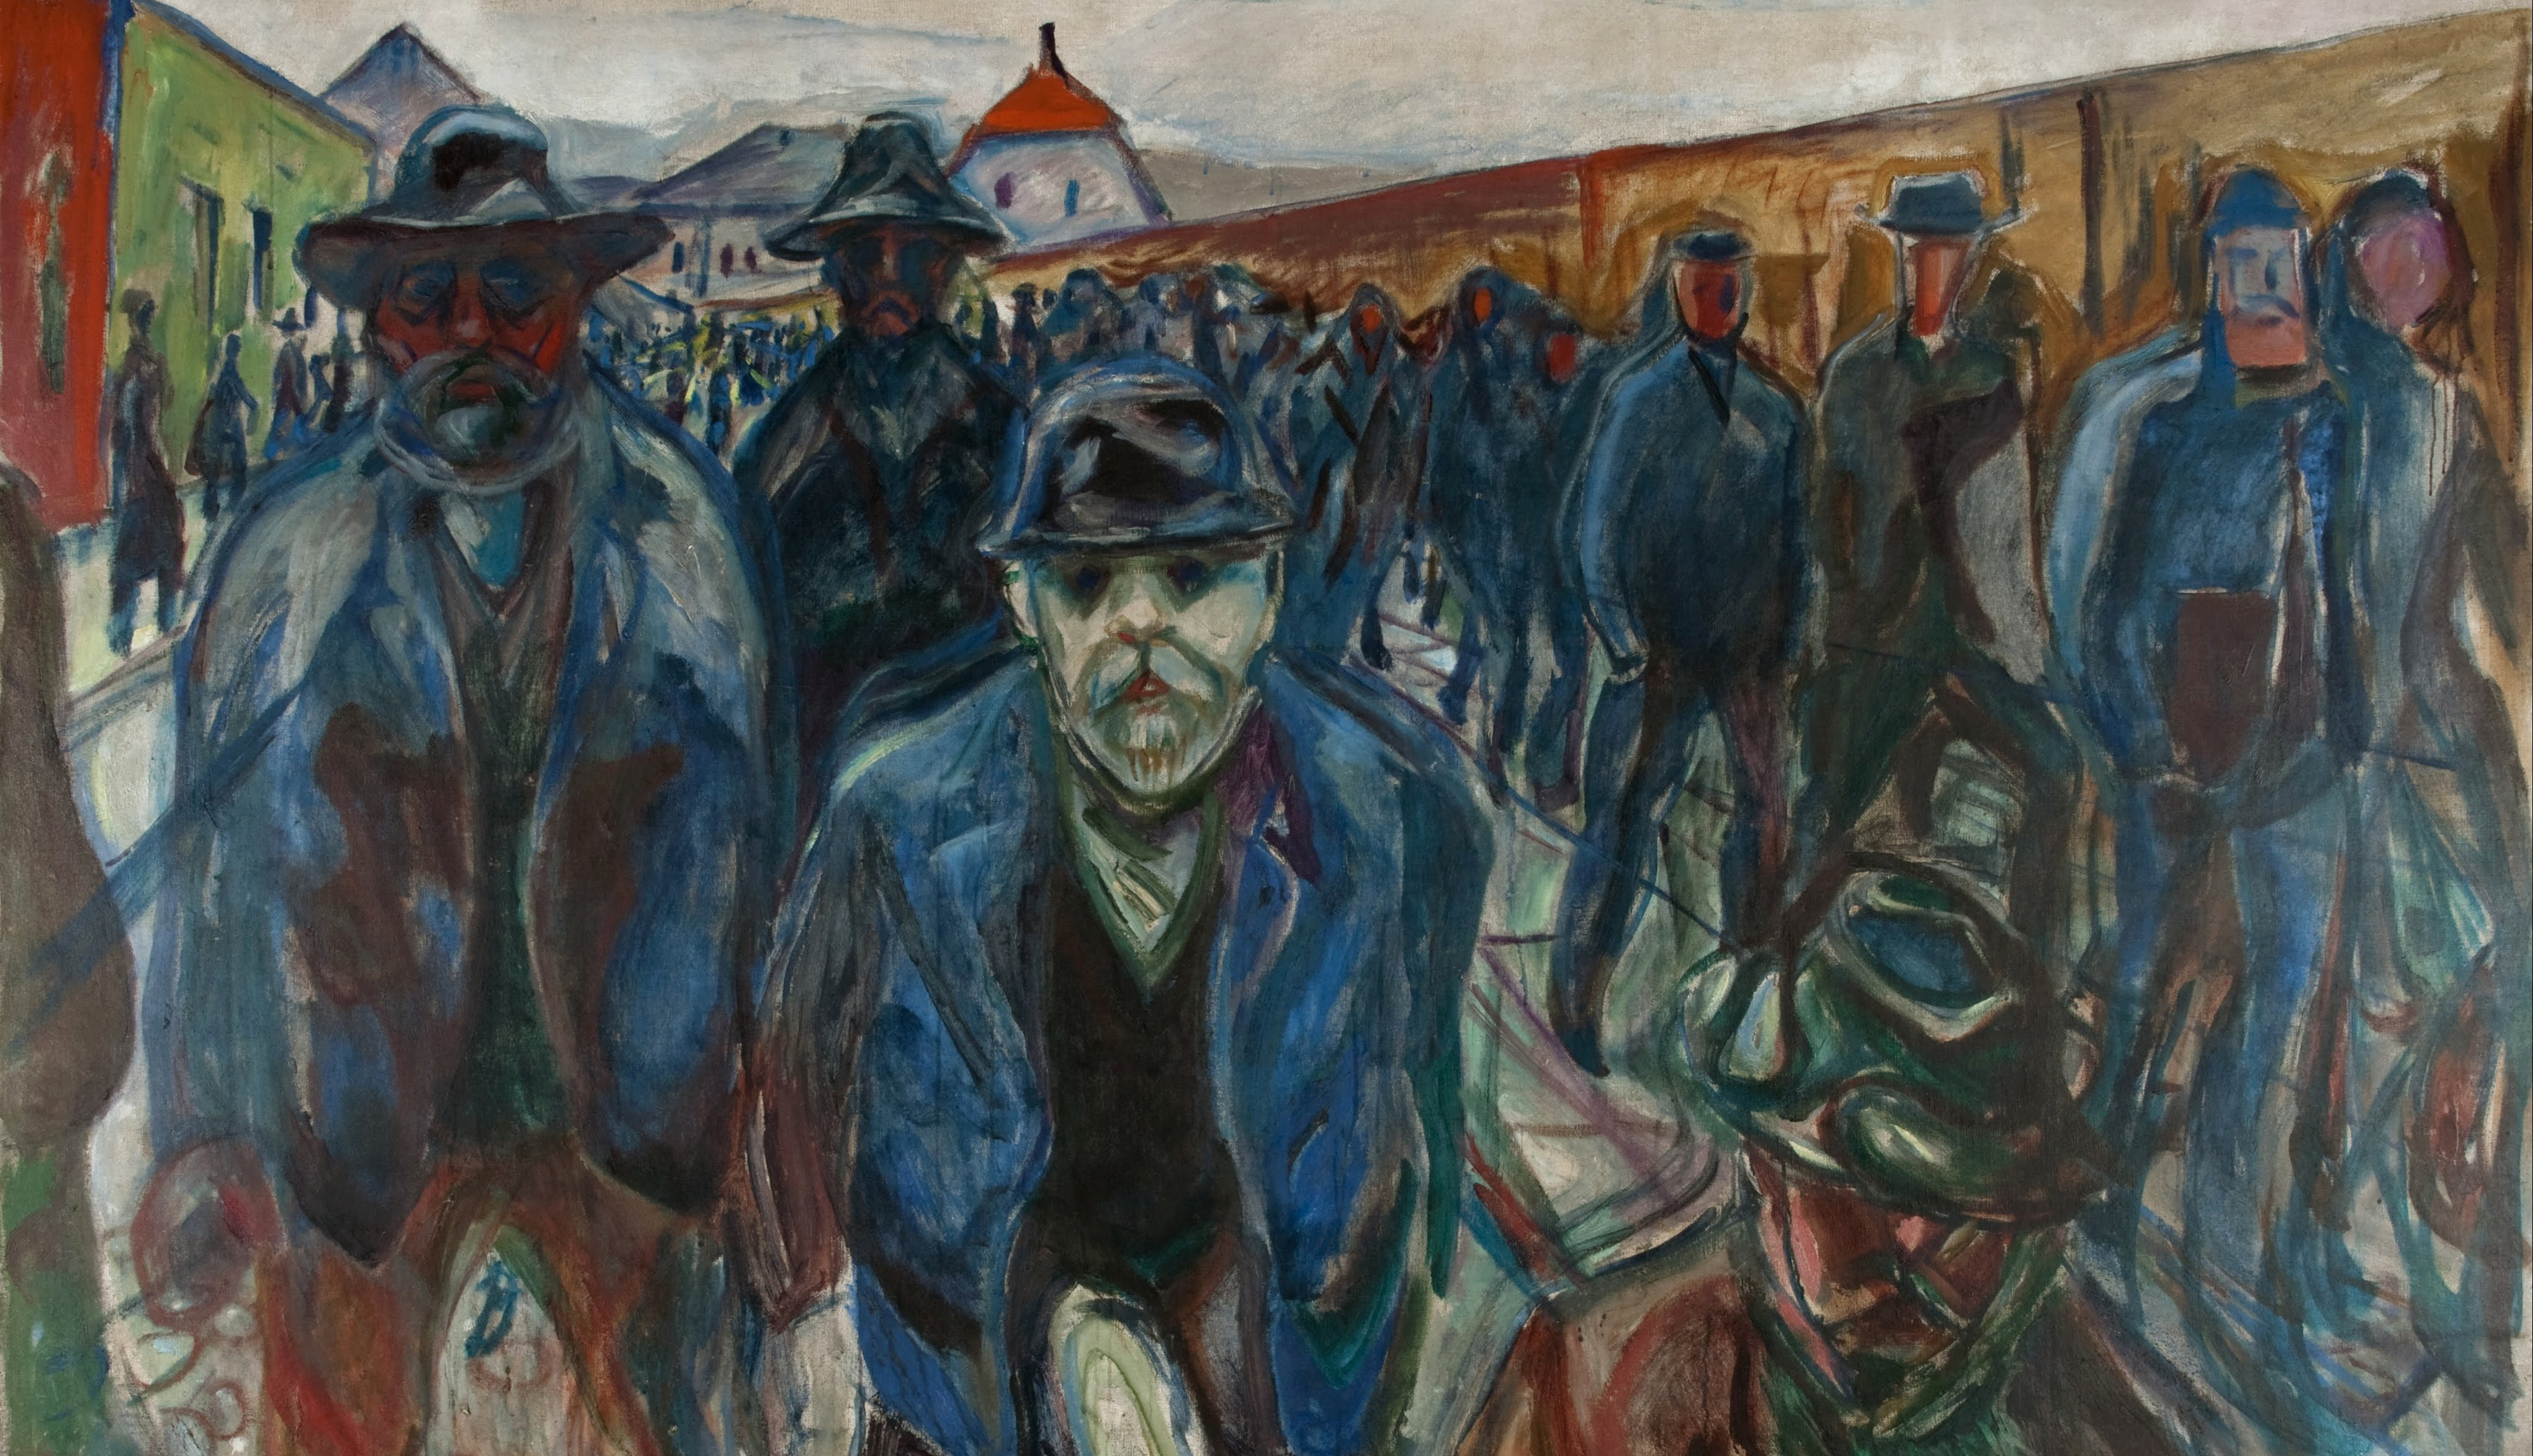 Edvard_Munch_-_Workers_on_their_Way_Home_-_Google_Art_Project